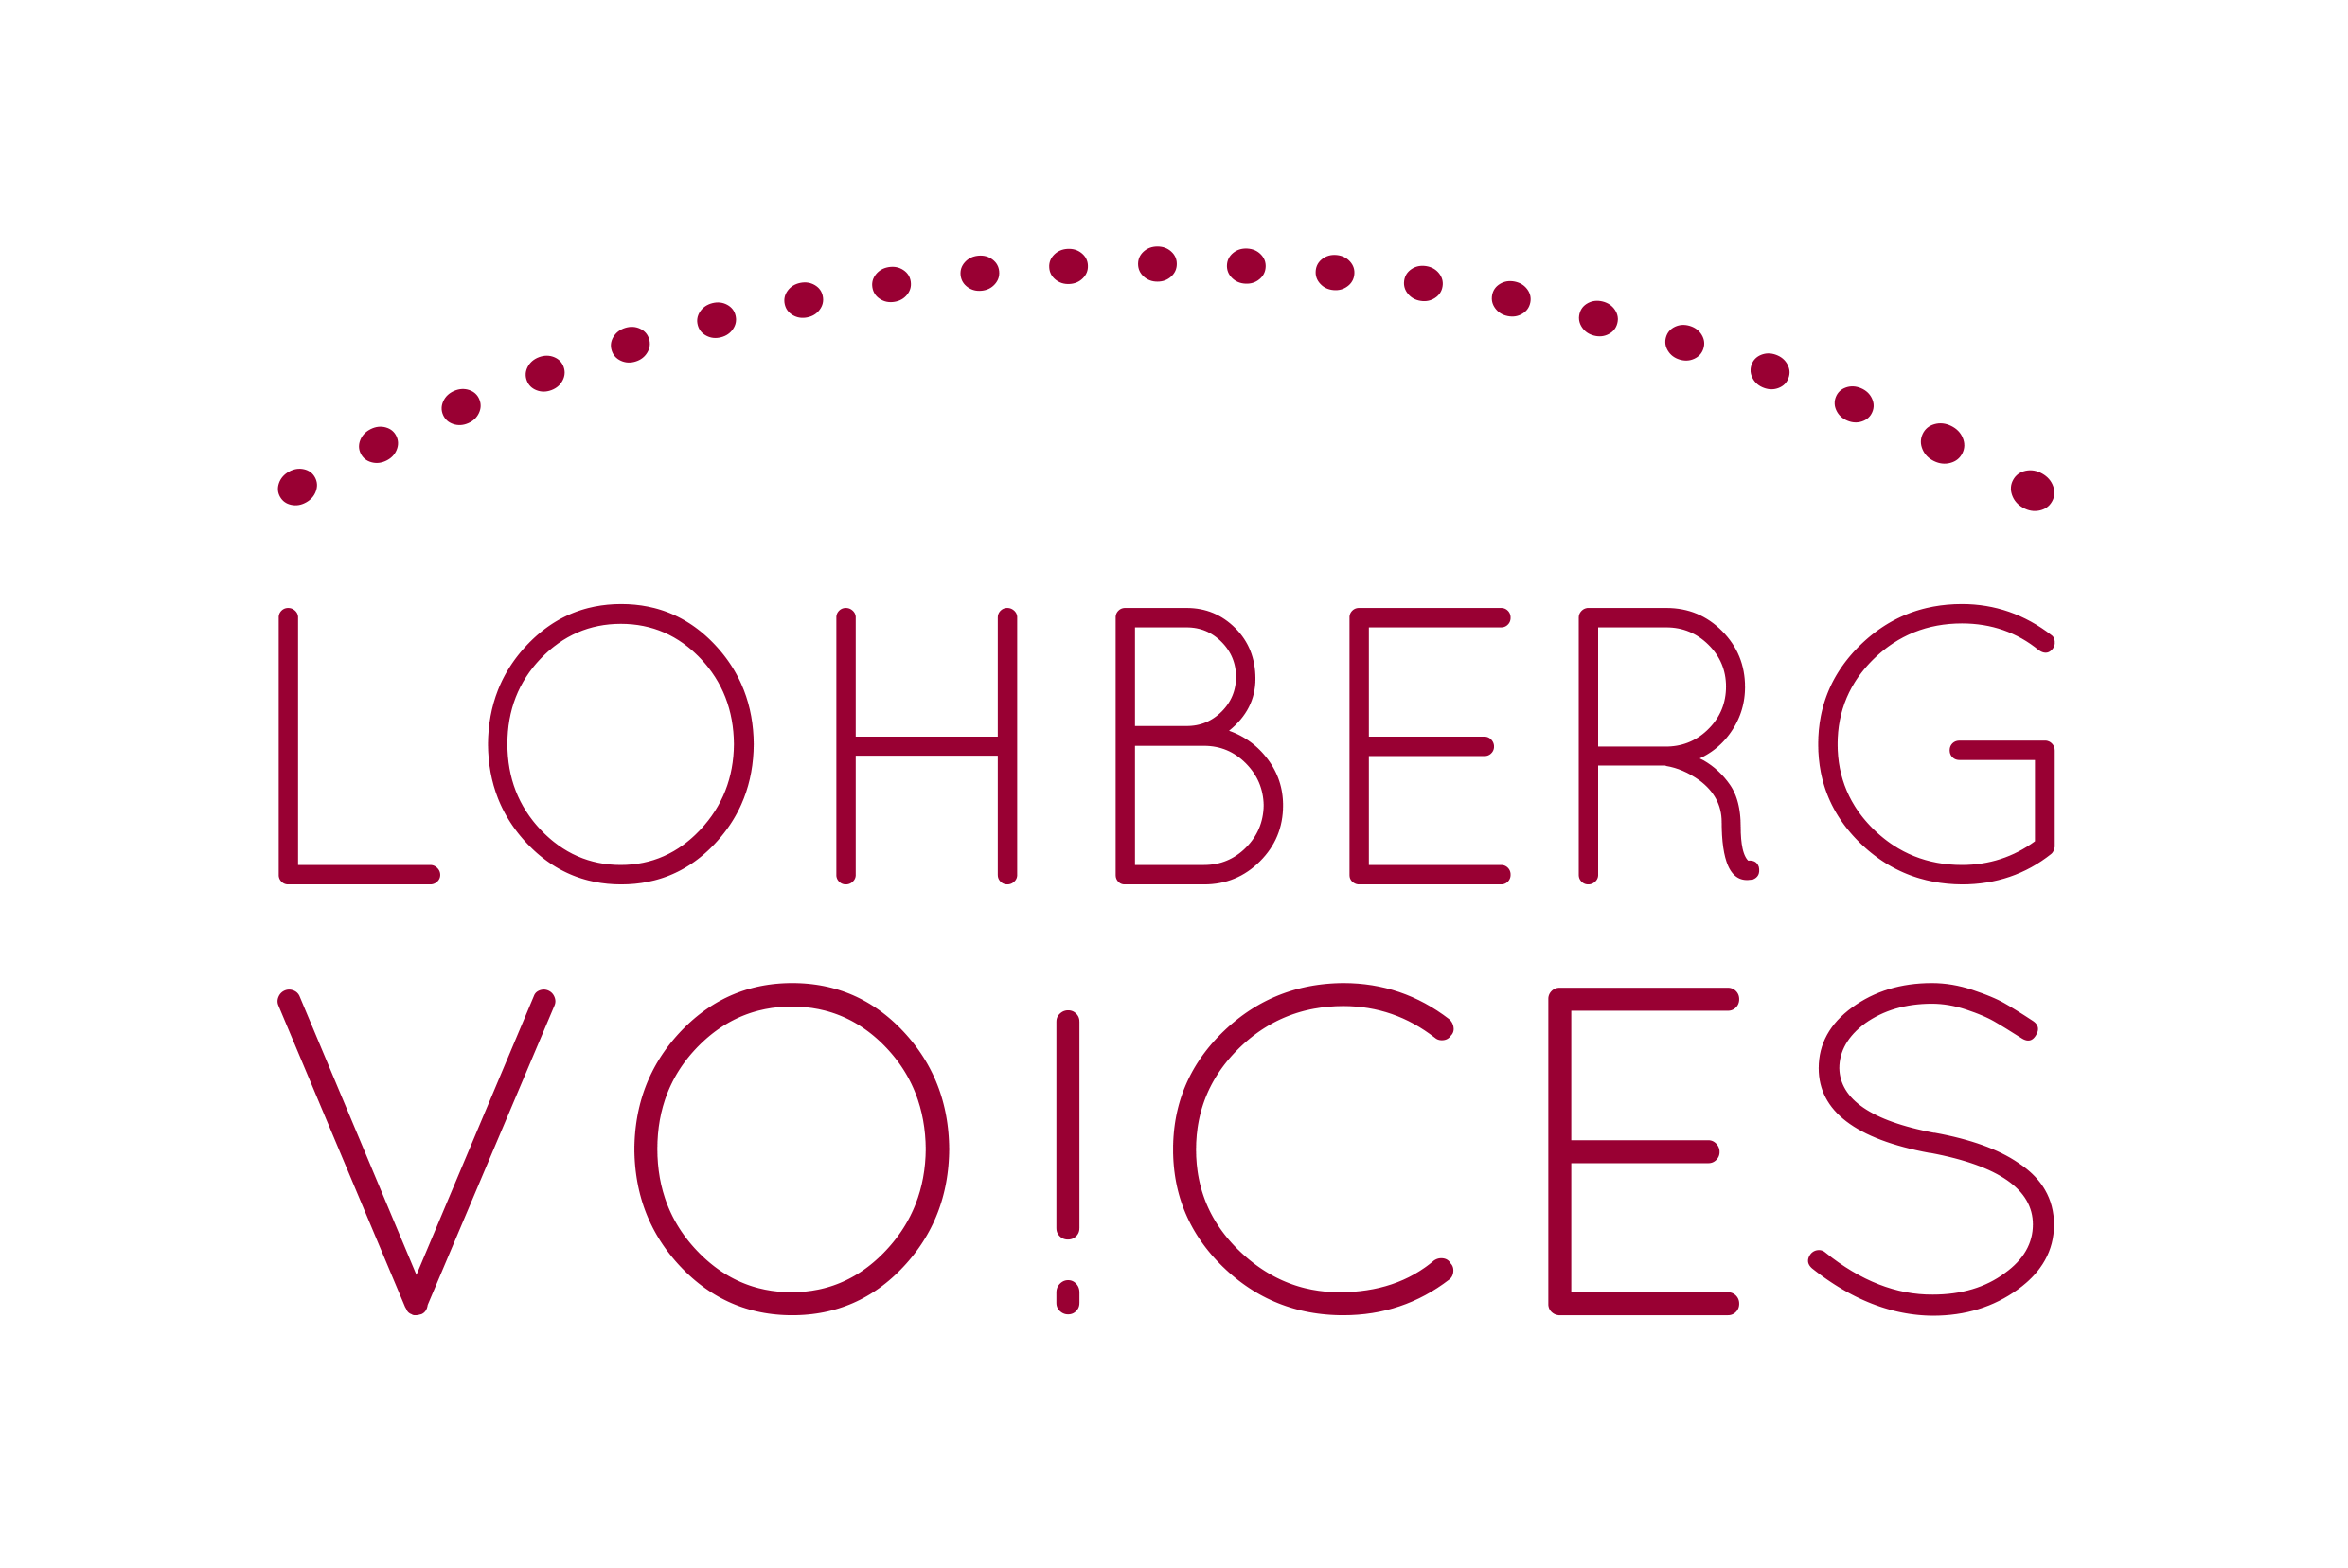 Lohberg Voices